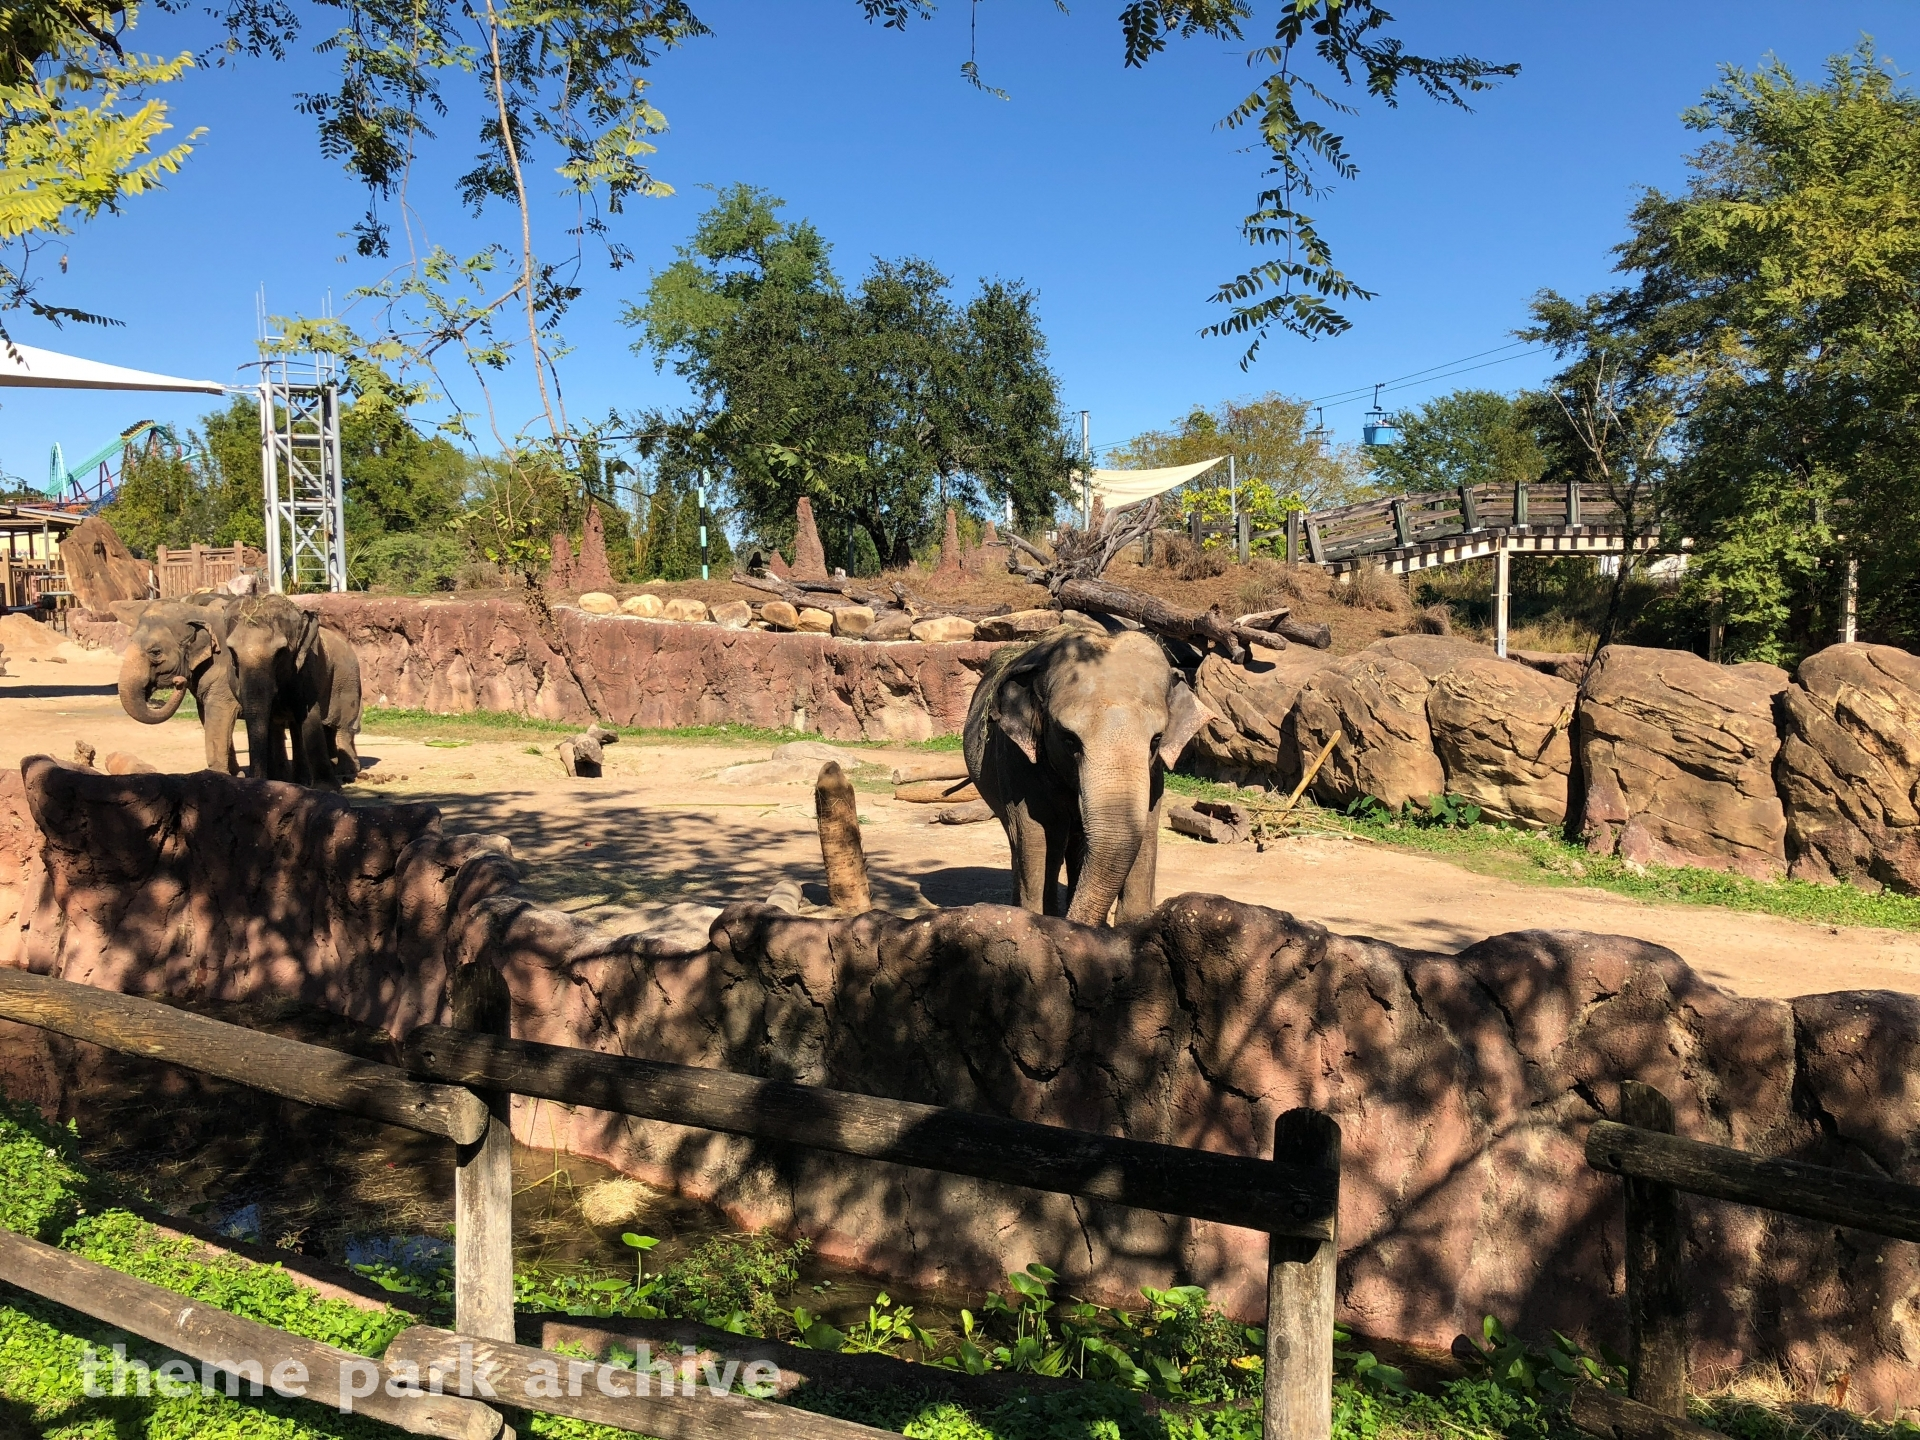 Edge of Africa at Busch Gardens Tampa | Theme Park Archive